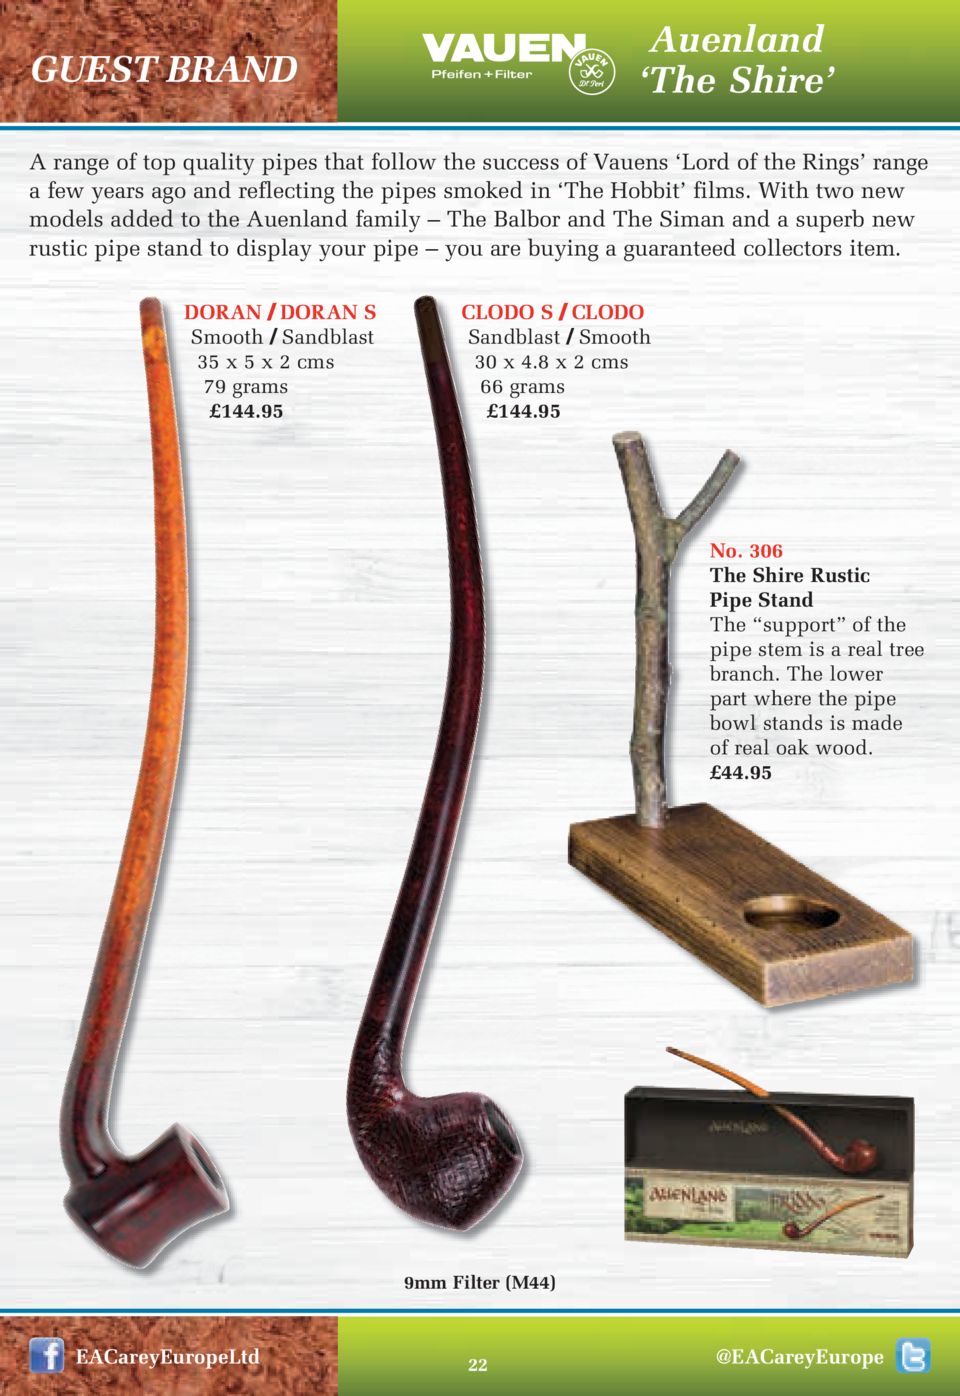 Auenland    The Shire     GUEST BRAND  A range of top quality pipes that follow the success of Vauens    Lord of the Rings...